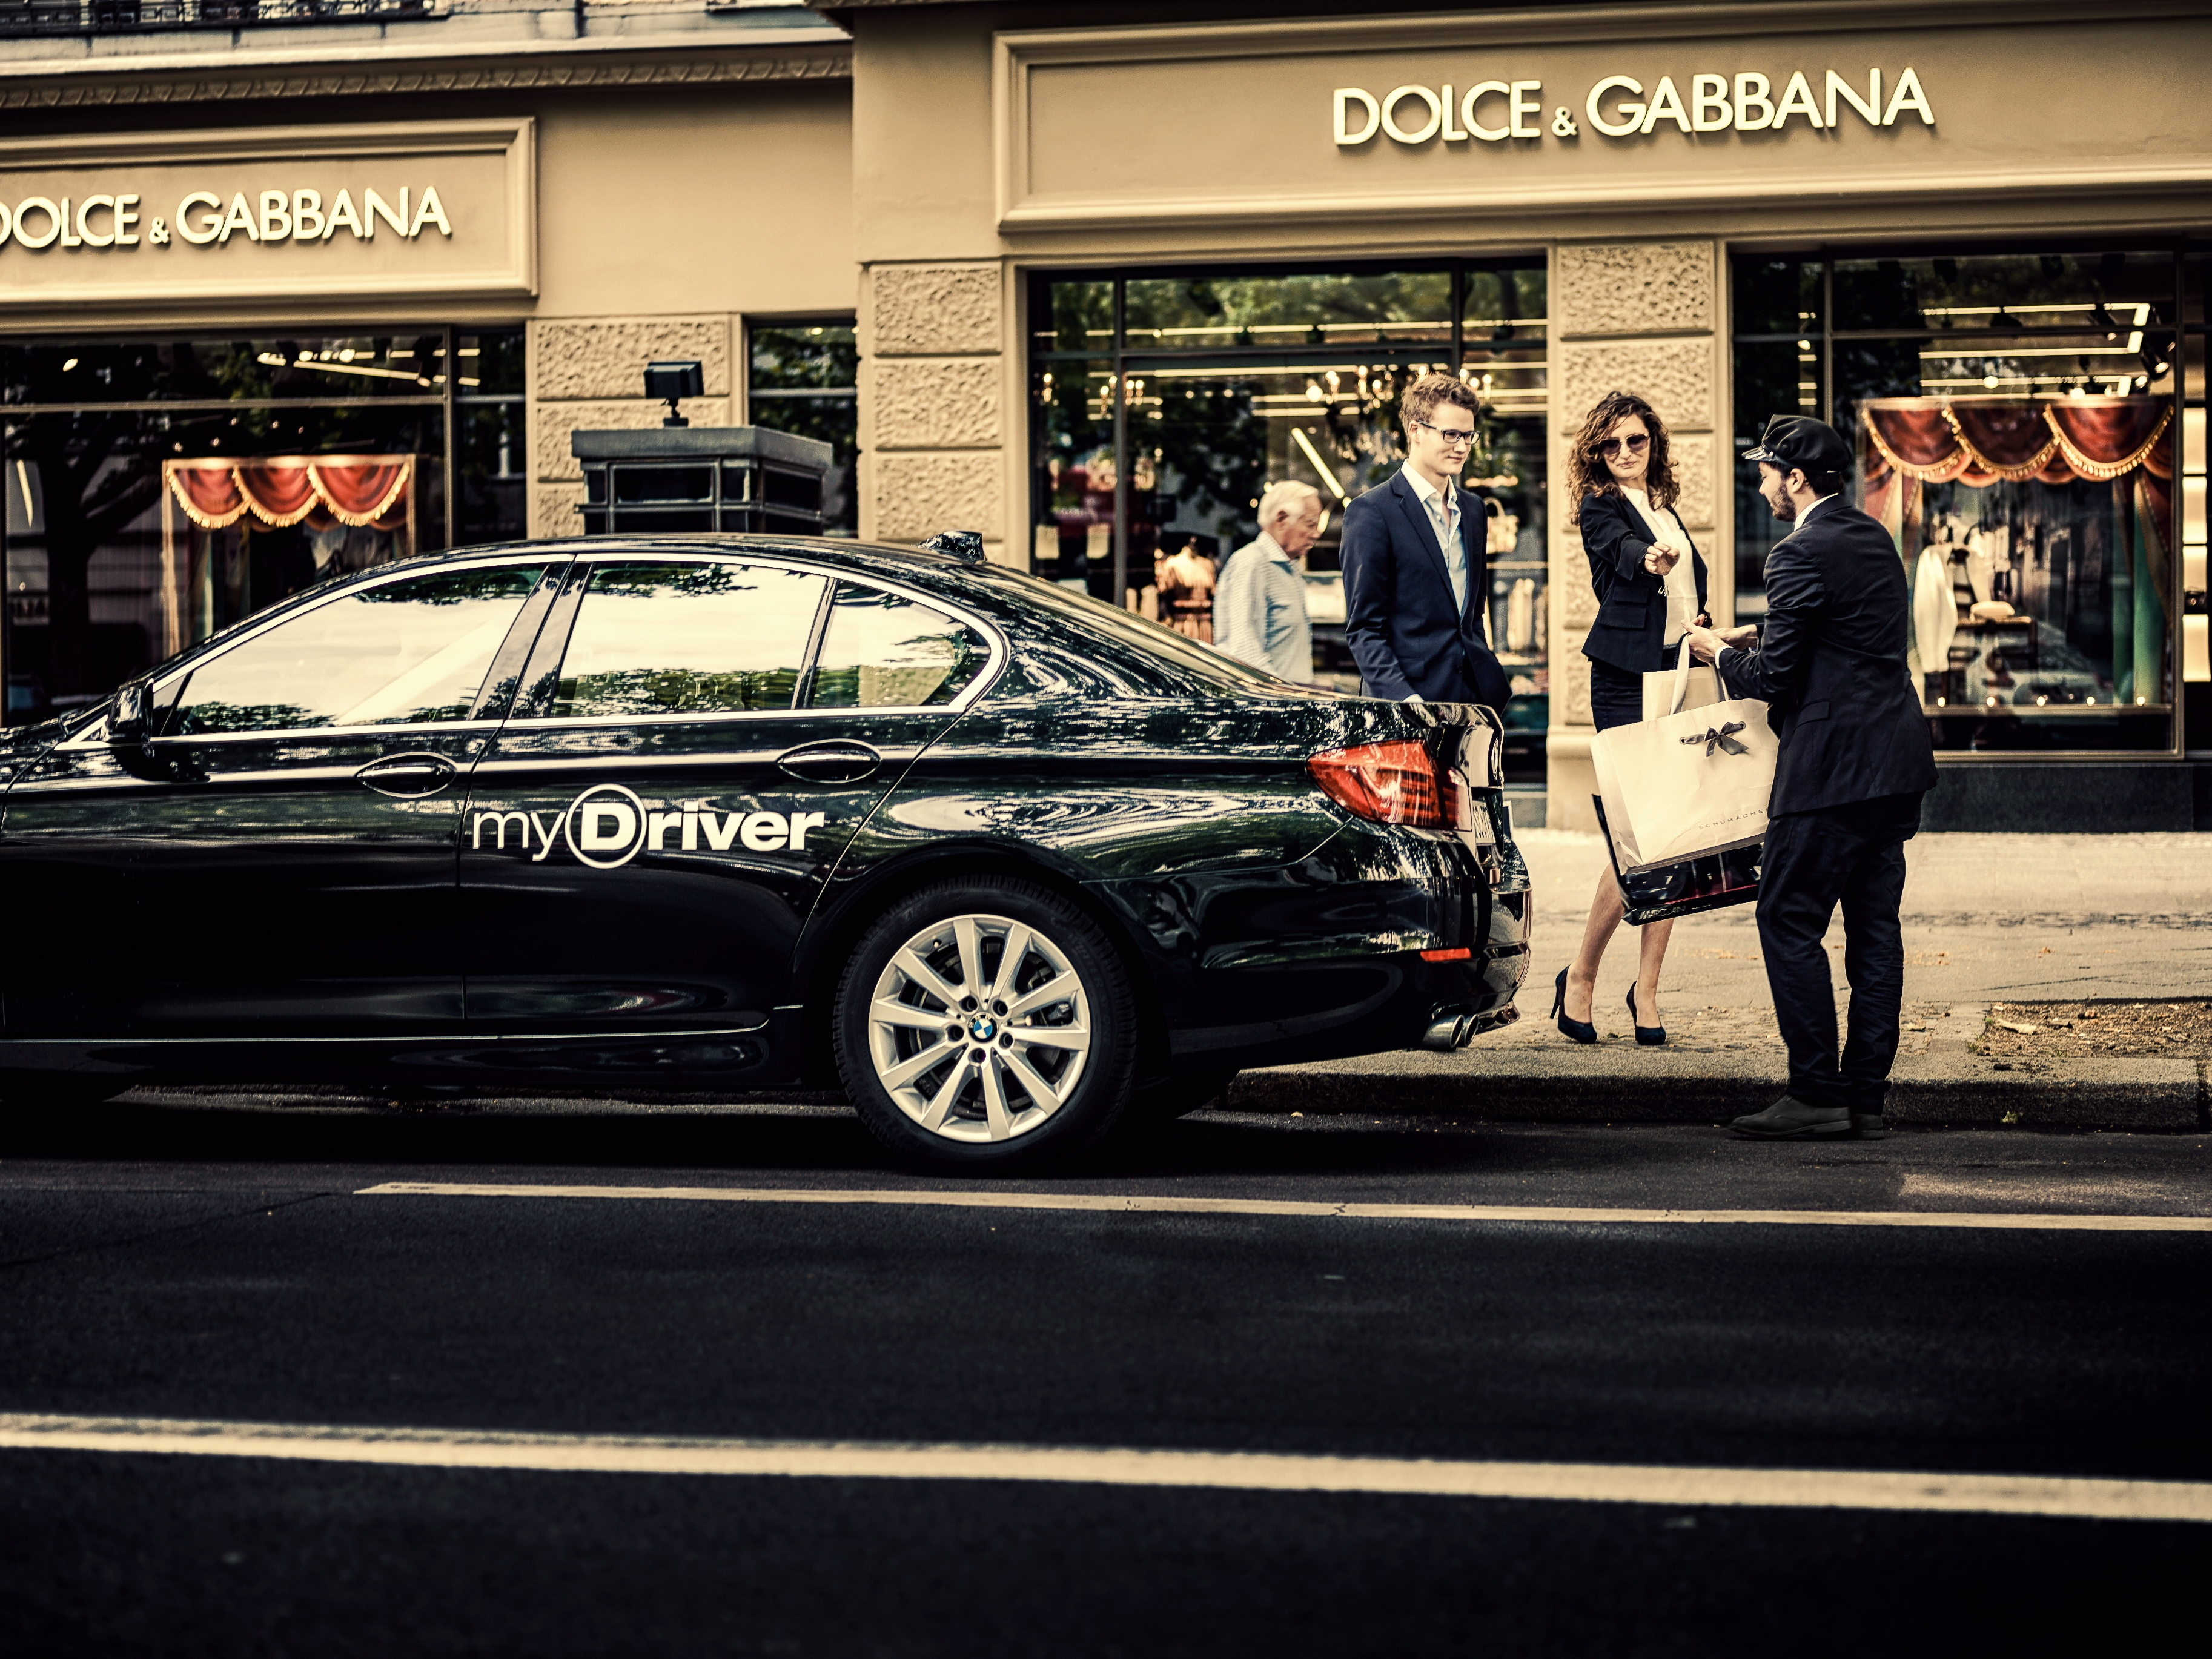 myDriver Picture by DavidUlrich- 5